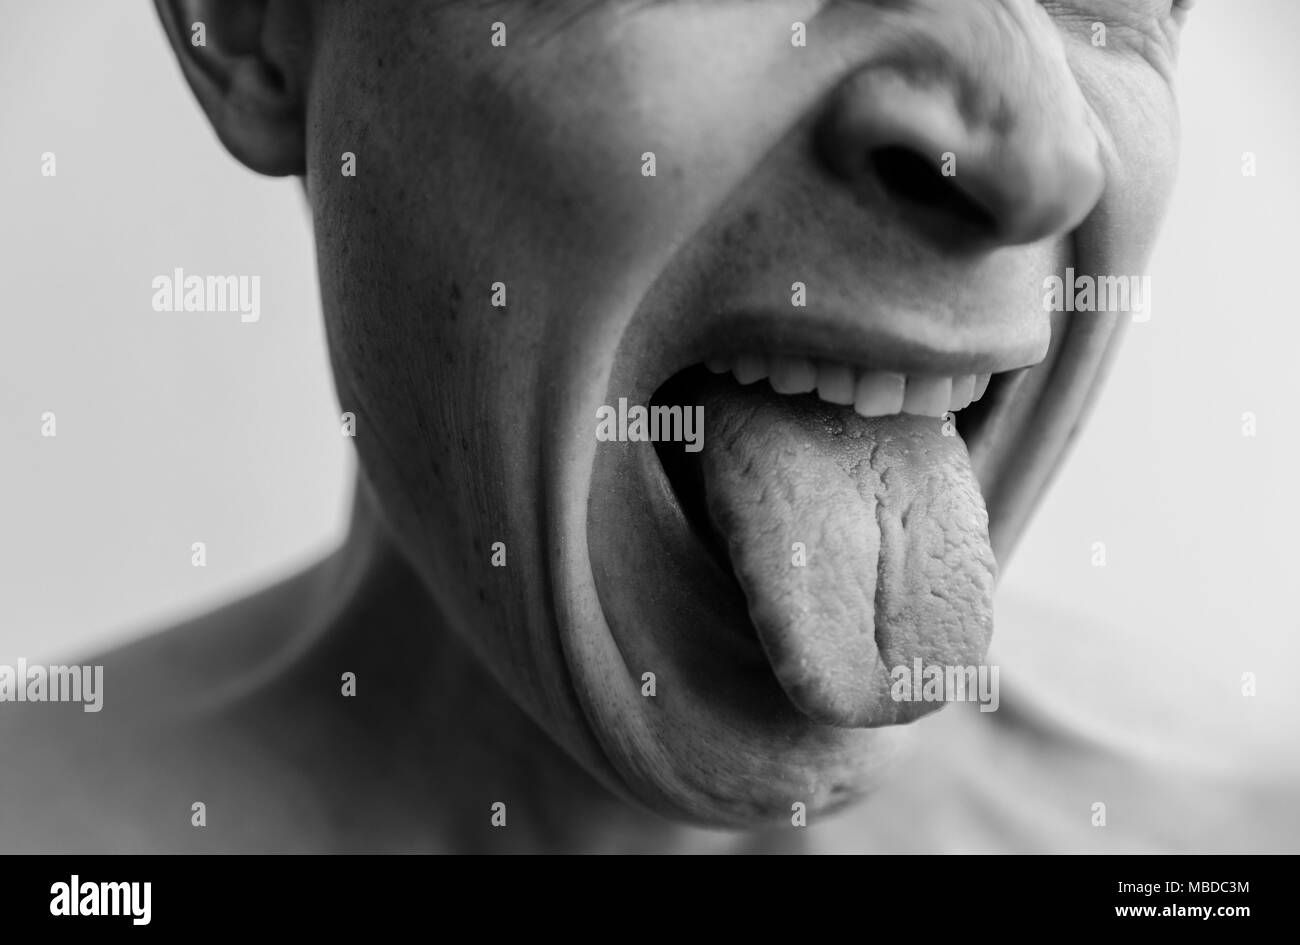 Mimicry, showing disgust . The lower part of the face of a man closeup. Black and white images - Stock Image